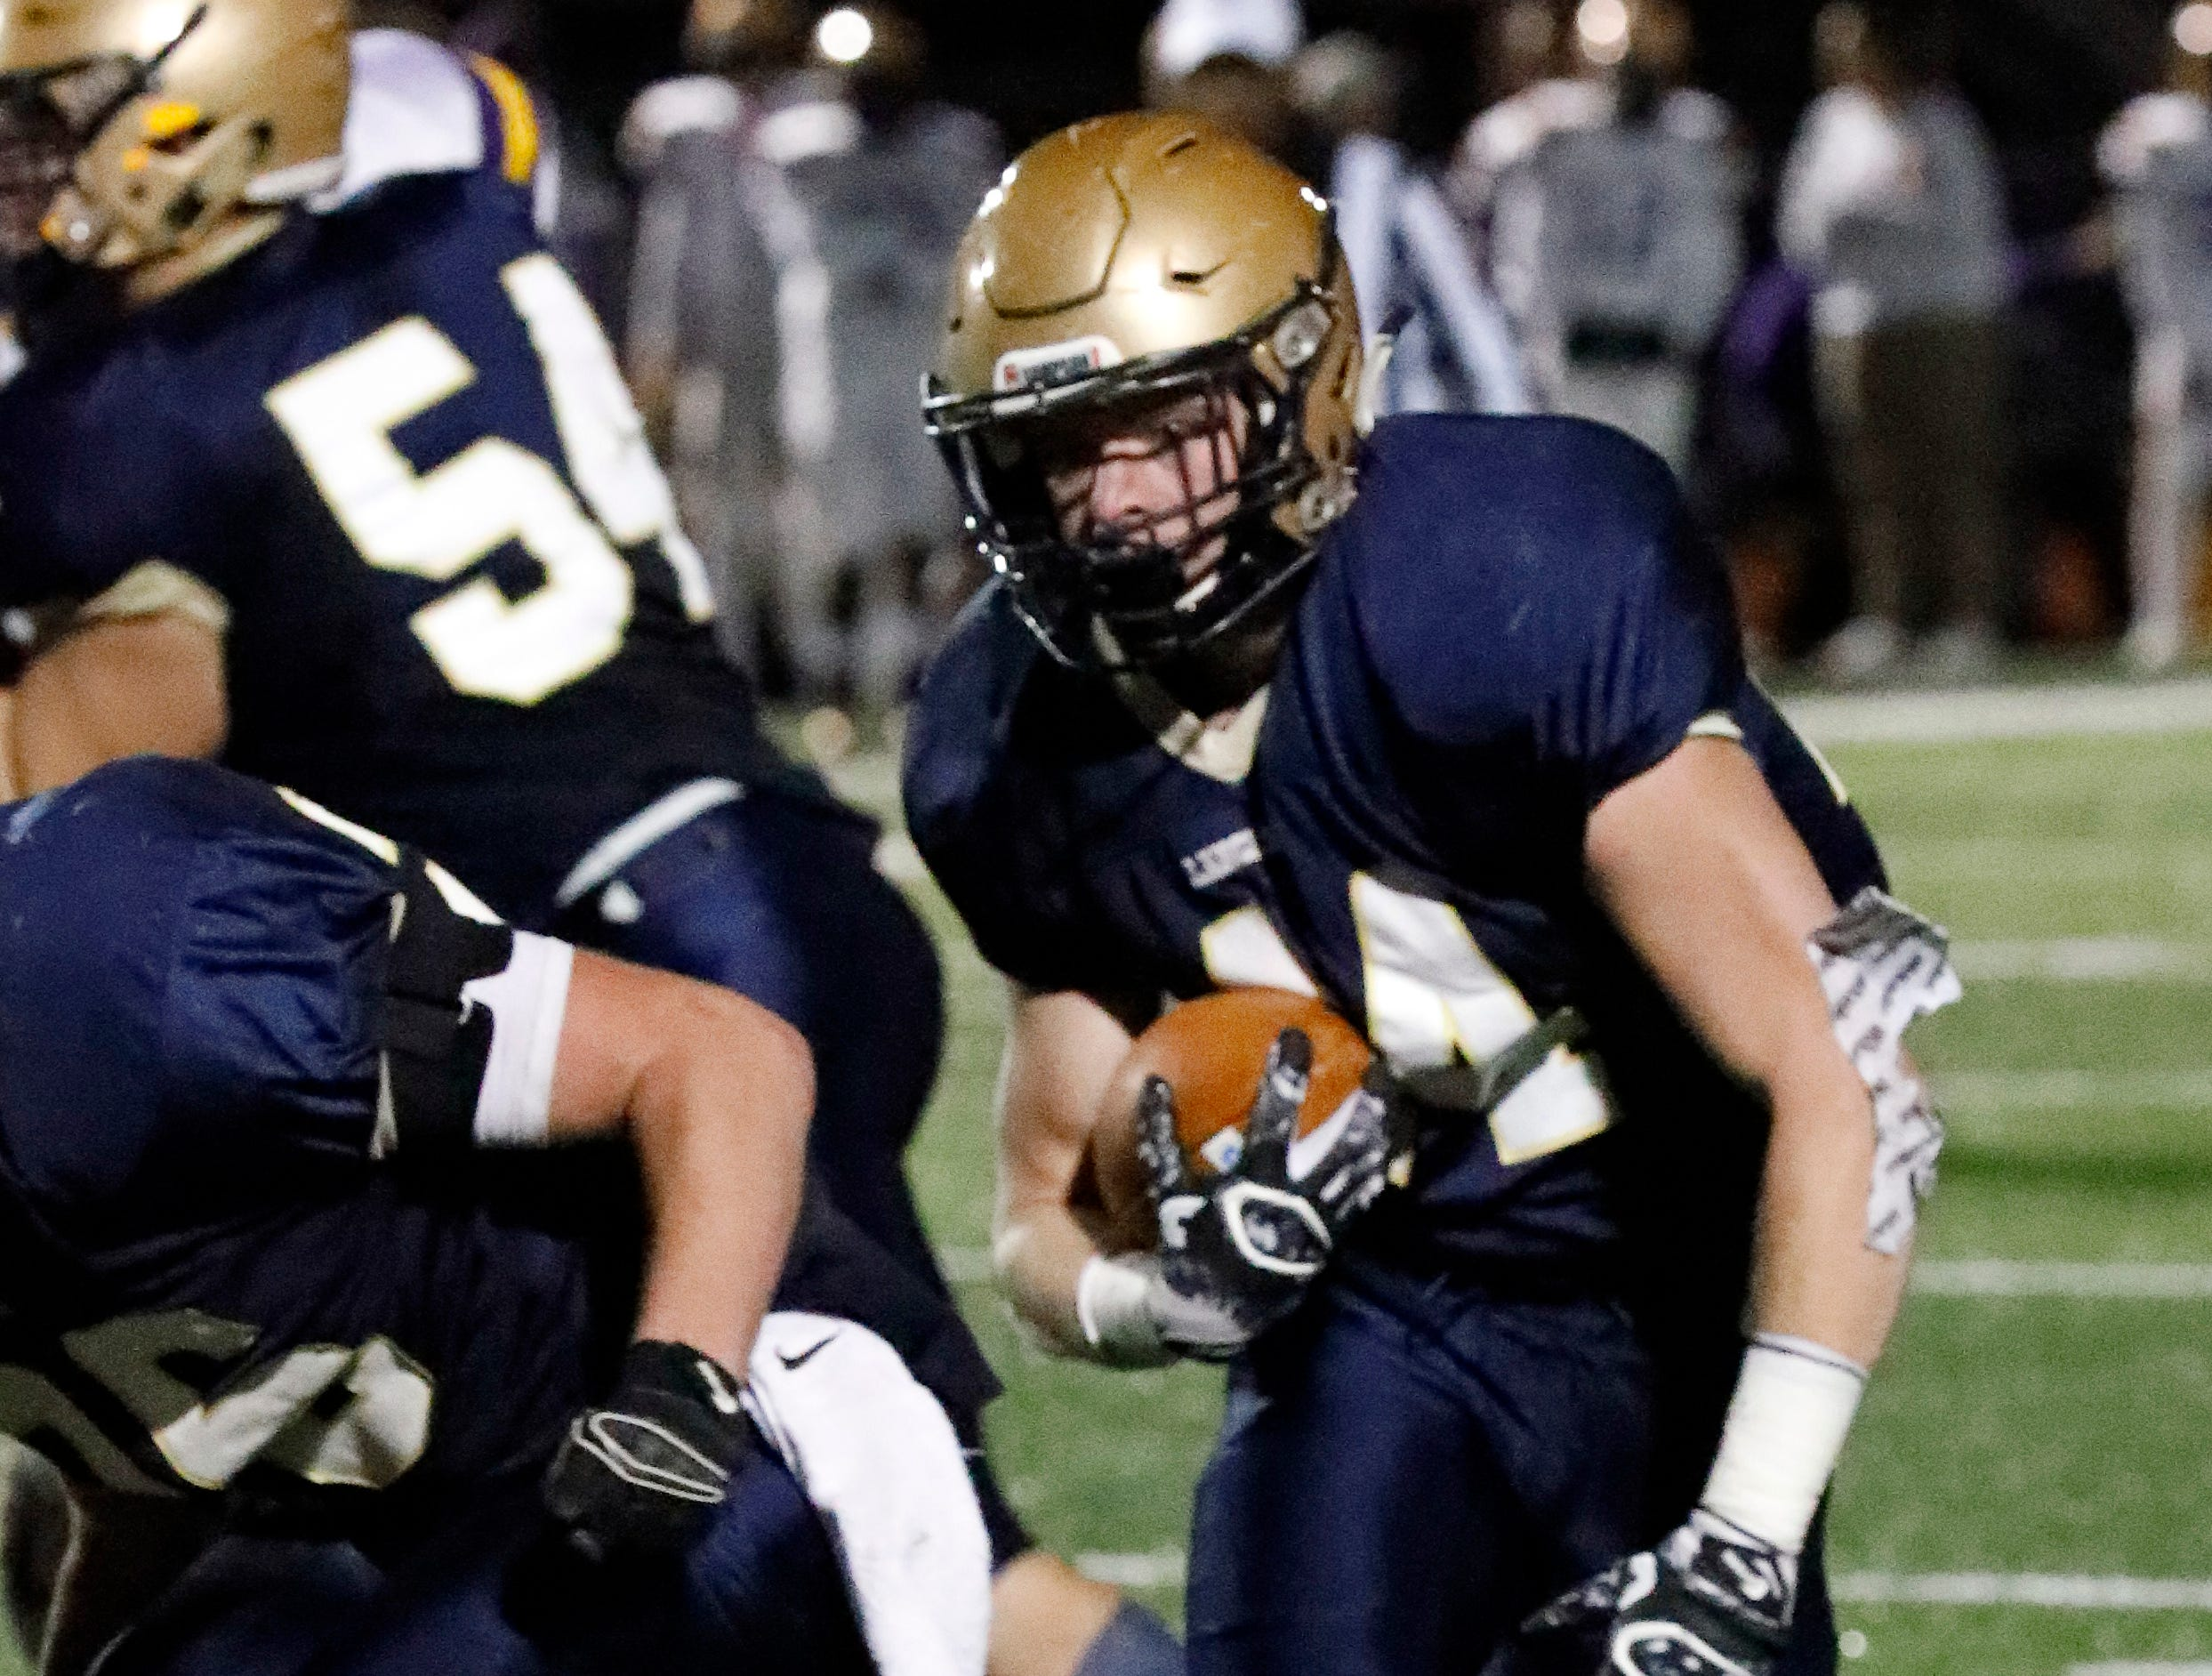 Lancaster's Alex Widener runs the ball during Thursday night's game, Oct. 25, 2018, against Reynoldsburg at Fulton Field in Lancaster. The Golden Gales lost the game 28-7.